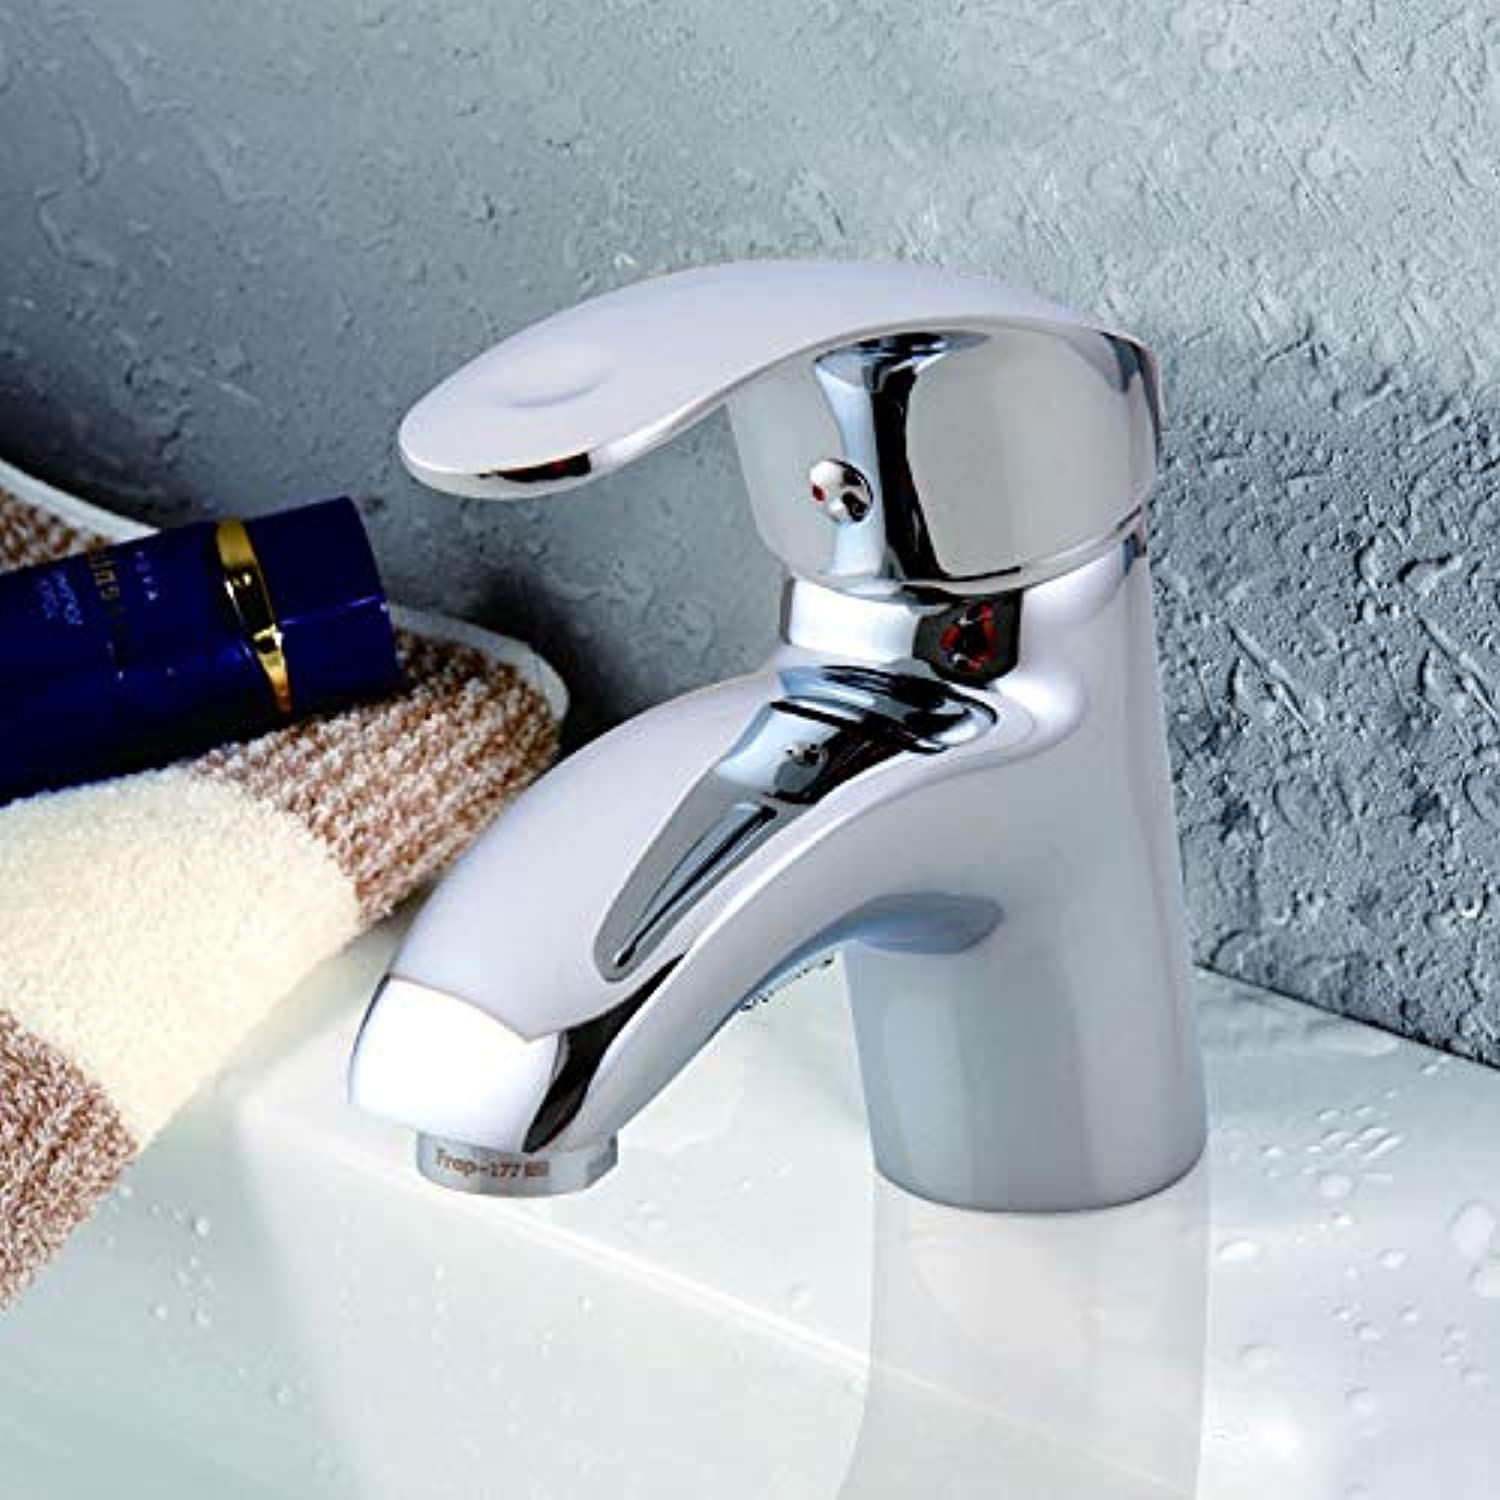 Bathroom Single Handle Chrome Single-Slot Faucet, Basin Hot And Cold Water Faucet Mixing Valve Wash Basin Single Hole Faucet